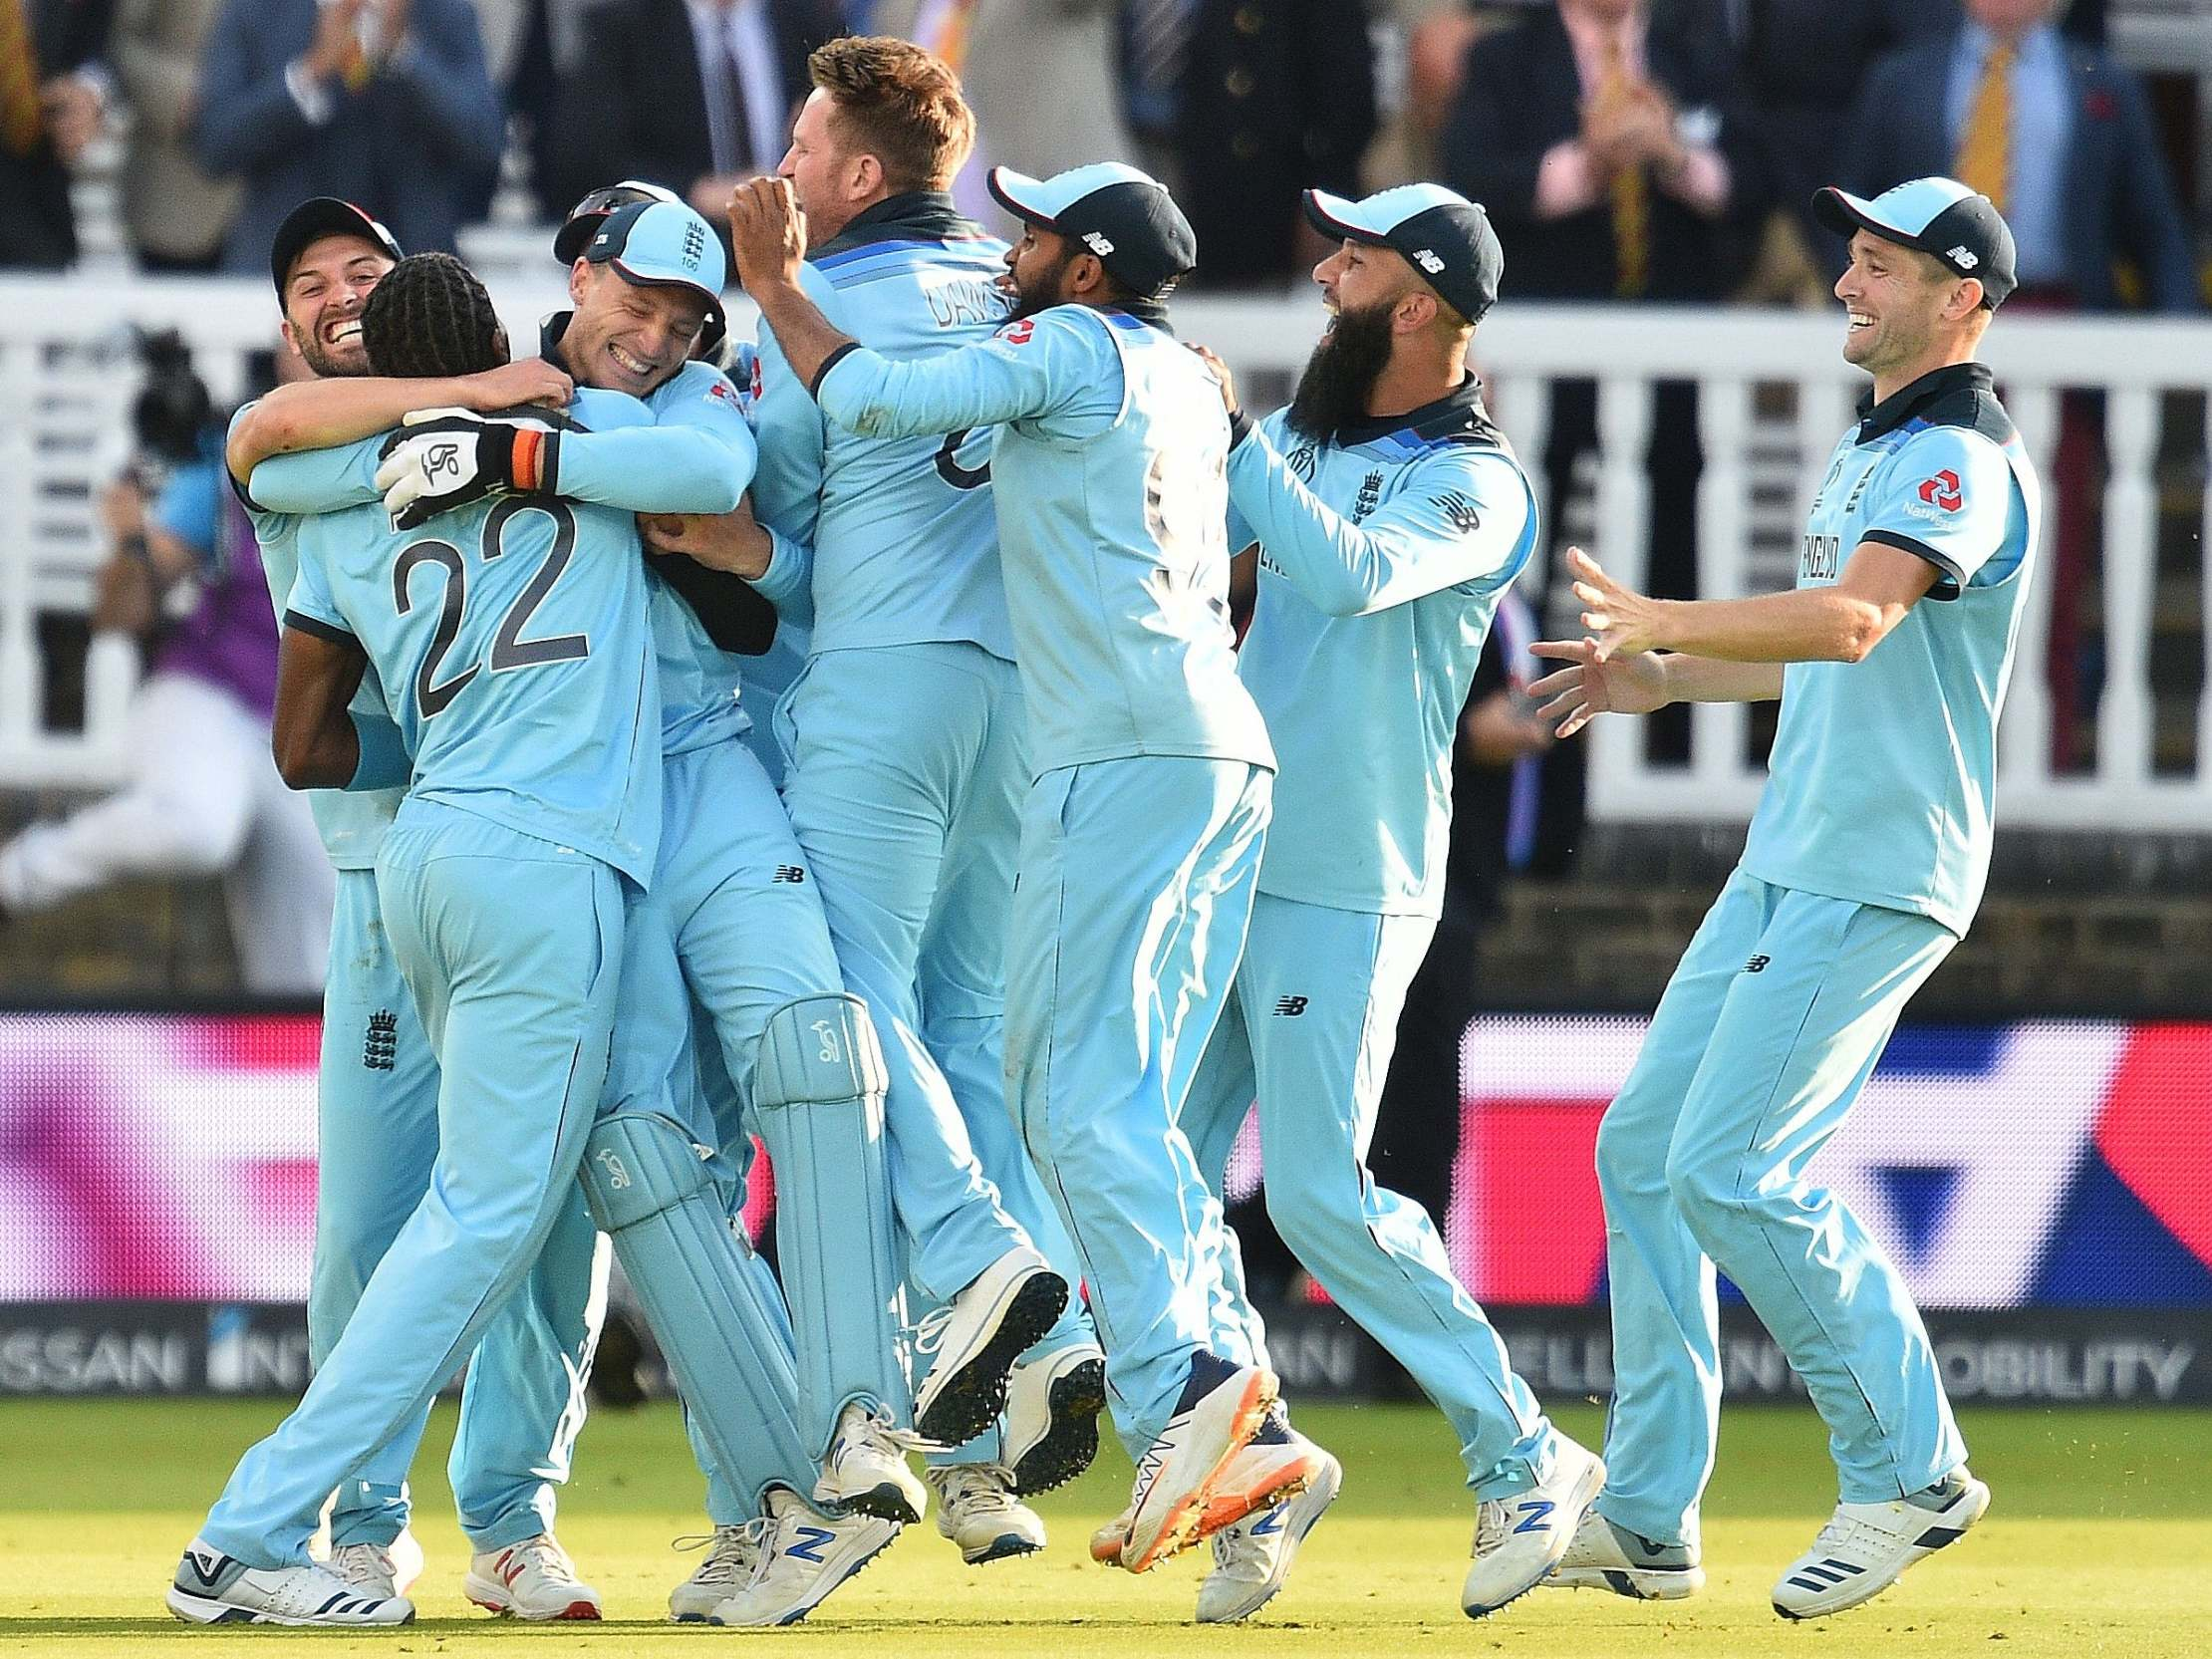 Cricket World Cup 2019: England defeat New Zealand after thrilling